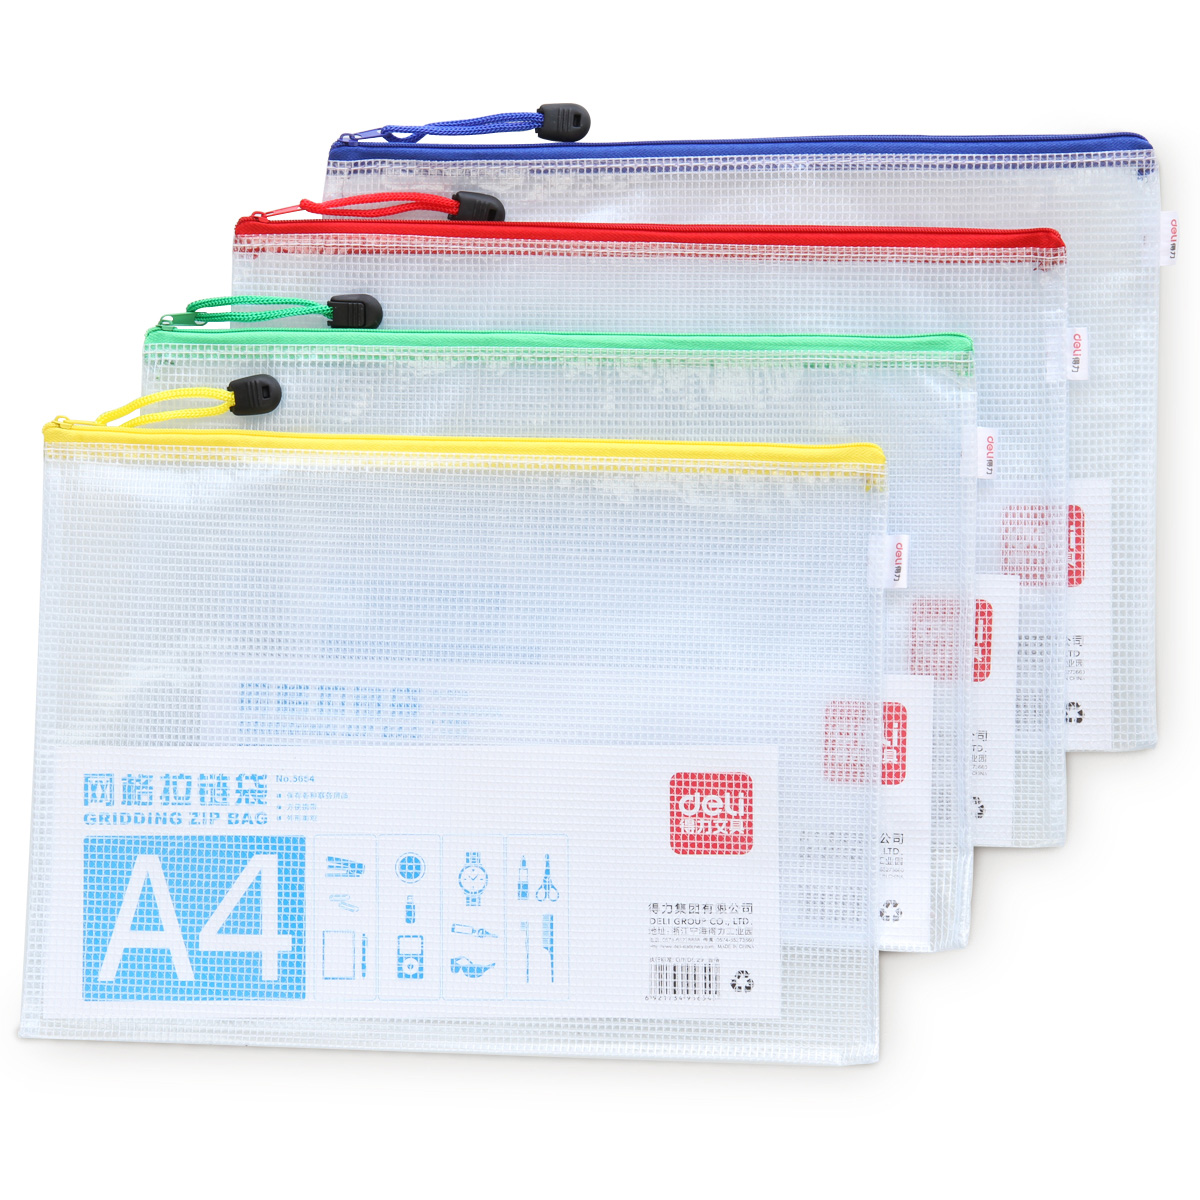 Deli (deli) 5654-A4 mesh zipper bag document bag edge bags mesh bags